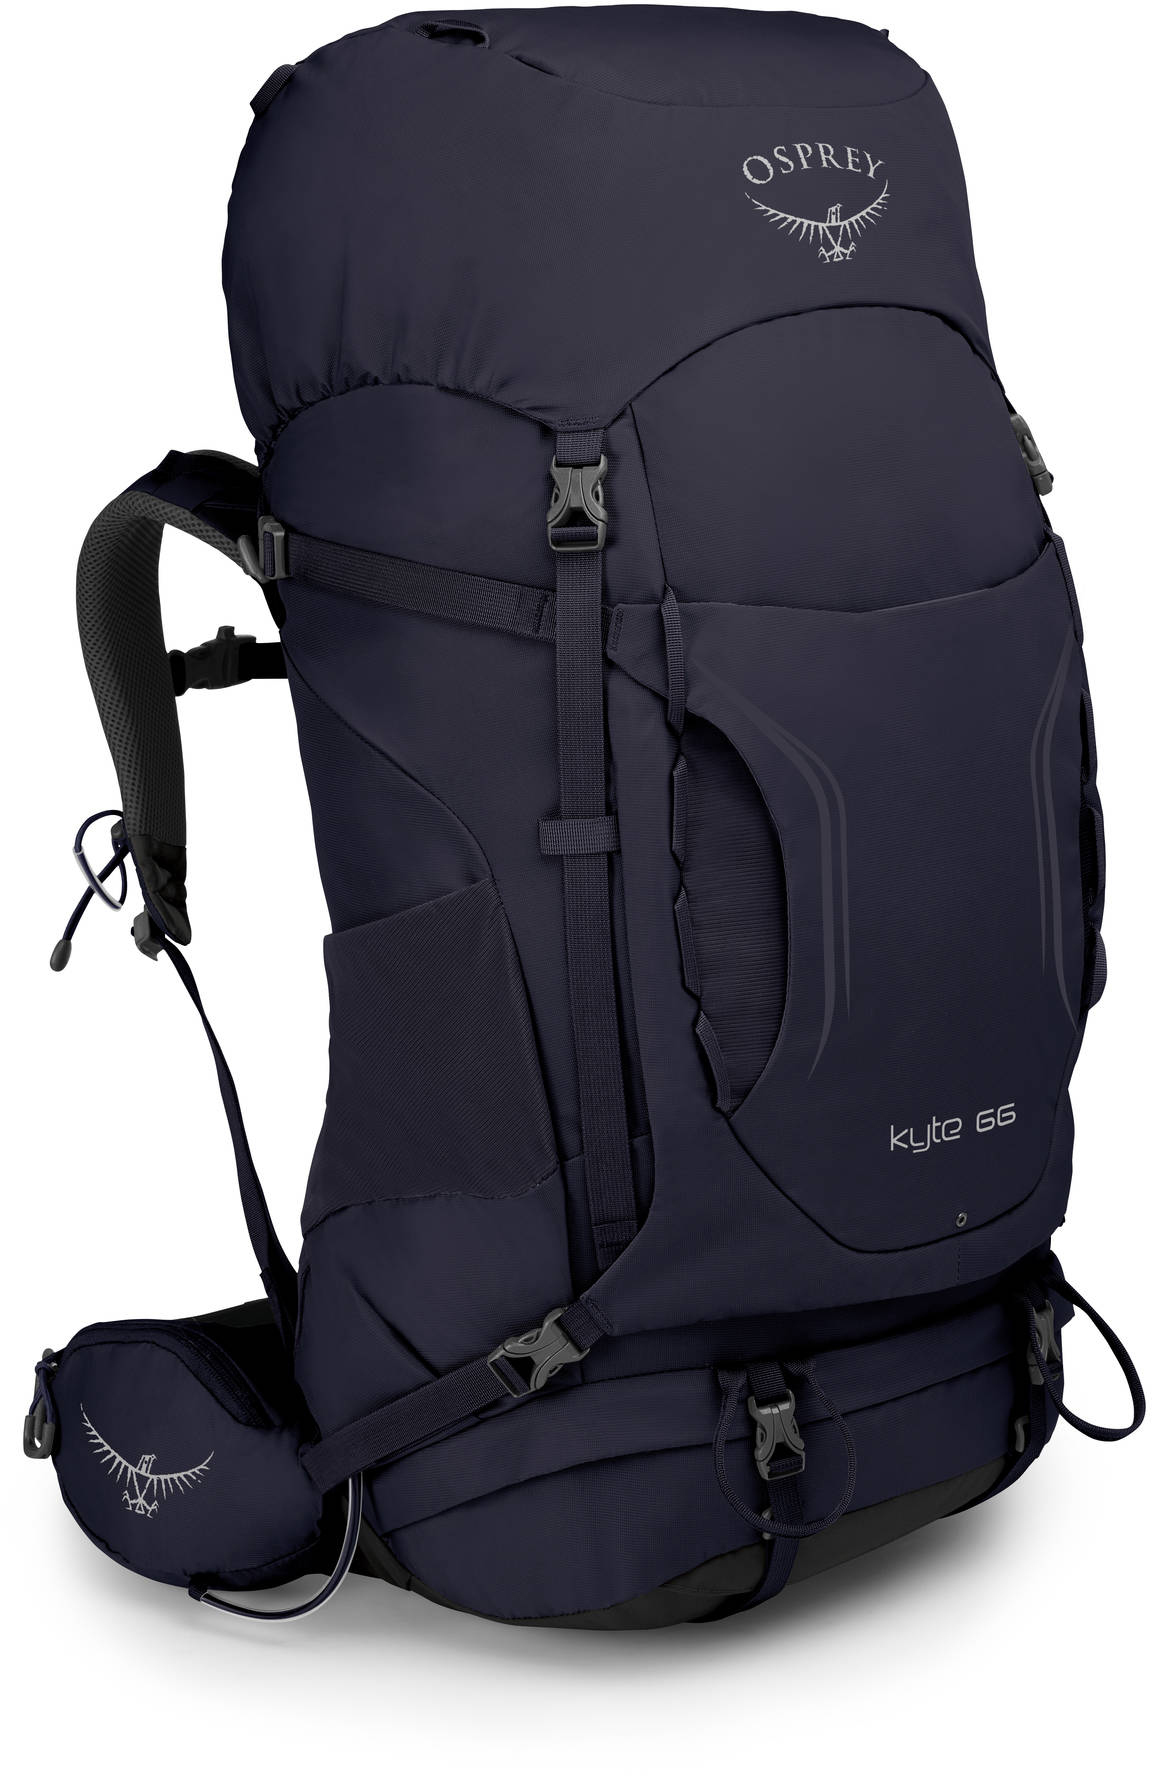 Kyte Рюкзак туристический Osprey Kyte 66 Mulberry Purple (2019) Kyte_66_S19_Side_Mulberry_Purple_web.jpg